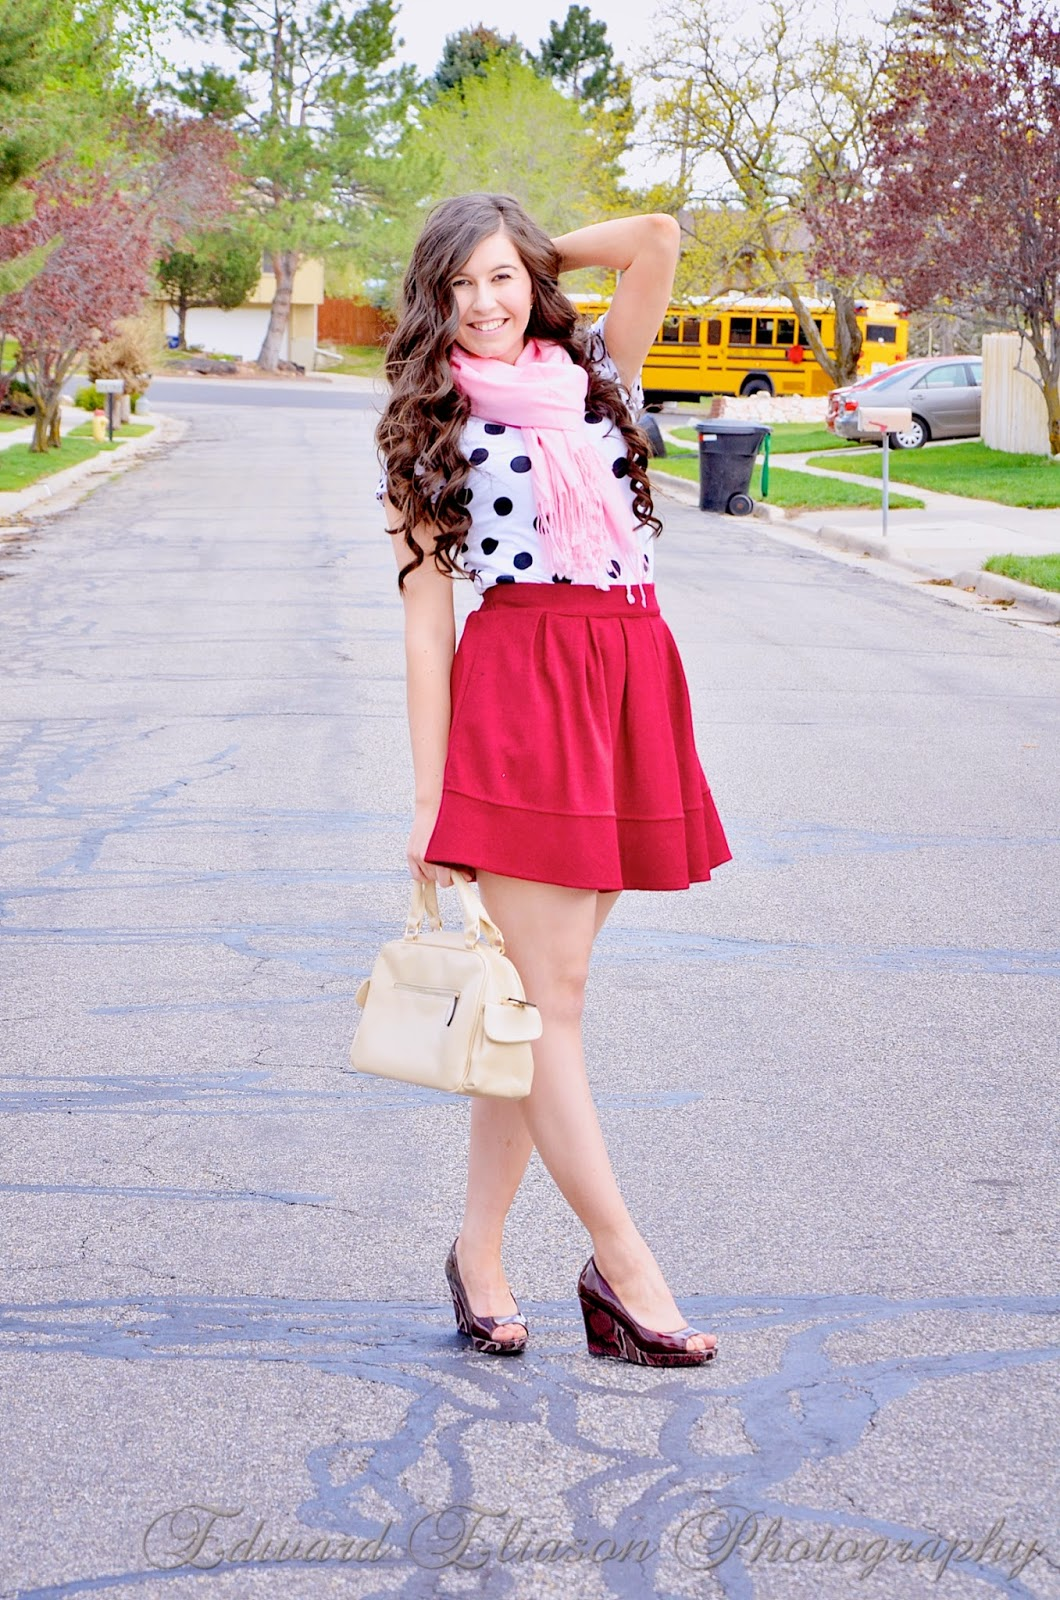 sheinside, edward eliason photography, snake skin heels, red fit and flare skirt, flared skirt, red skirt, red flared skirt, polka dot shirt, polka dots, pink scarf, pop of pink, outfit, clothing,